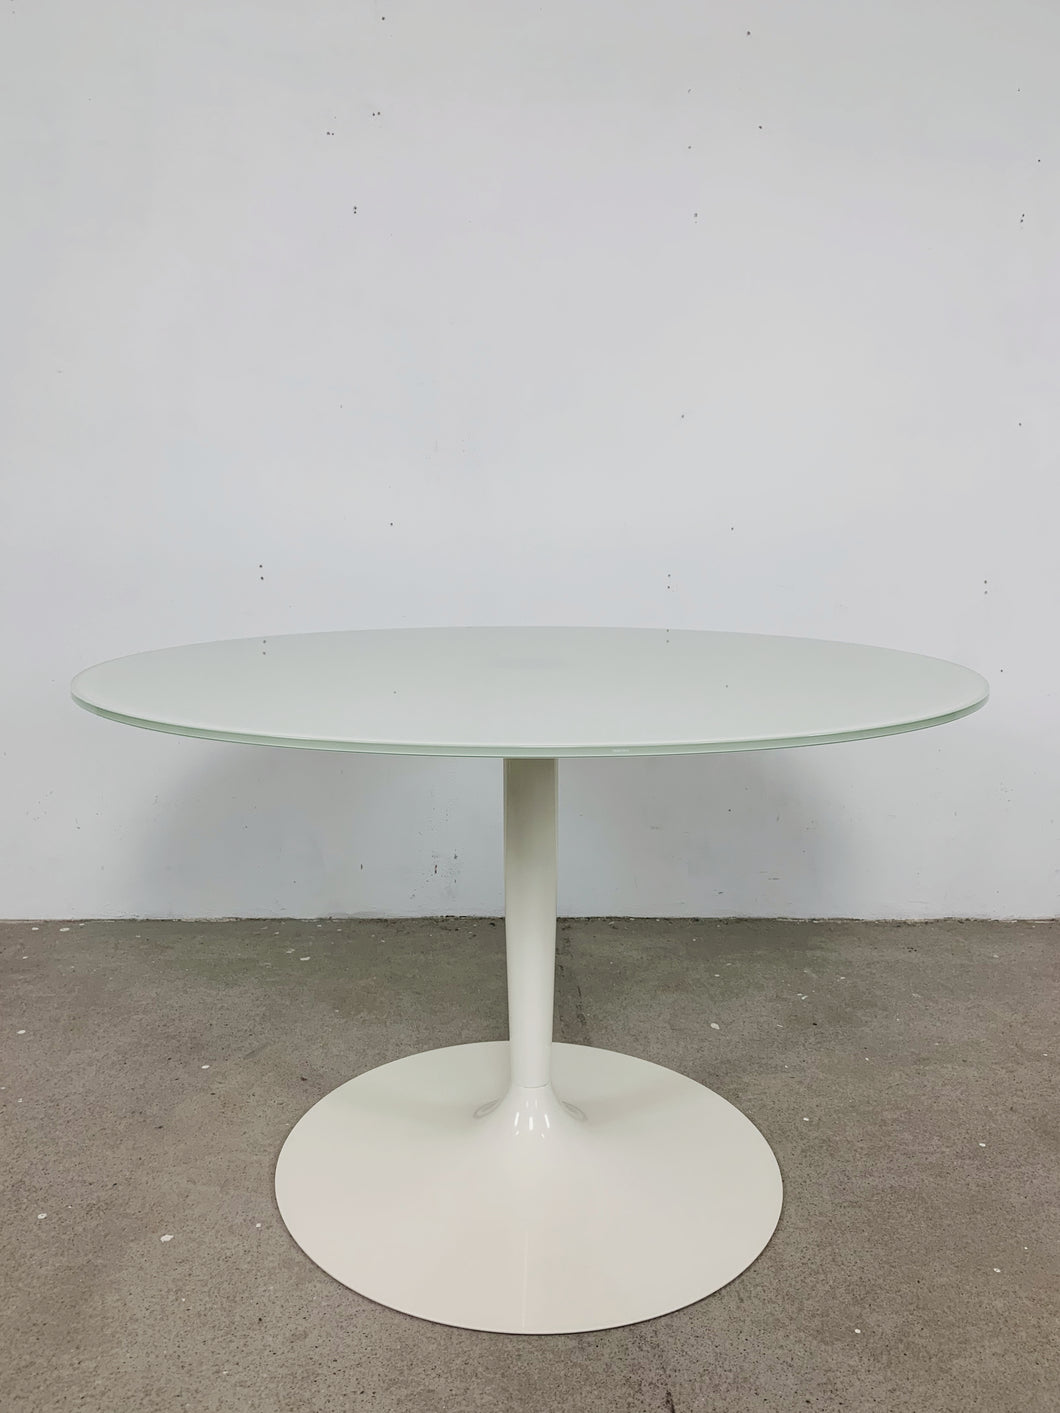 ROUND GLASS TABLE TULIP FOOT